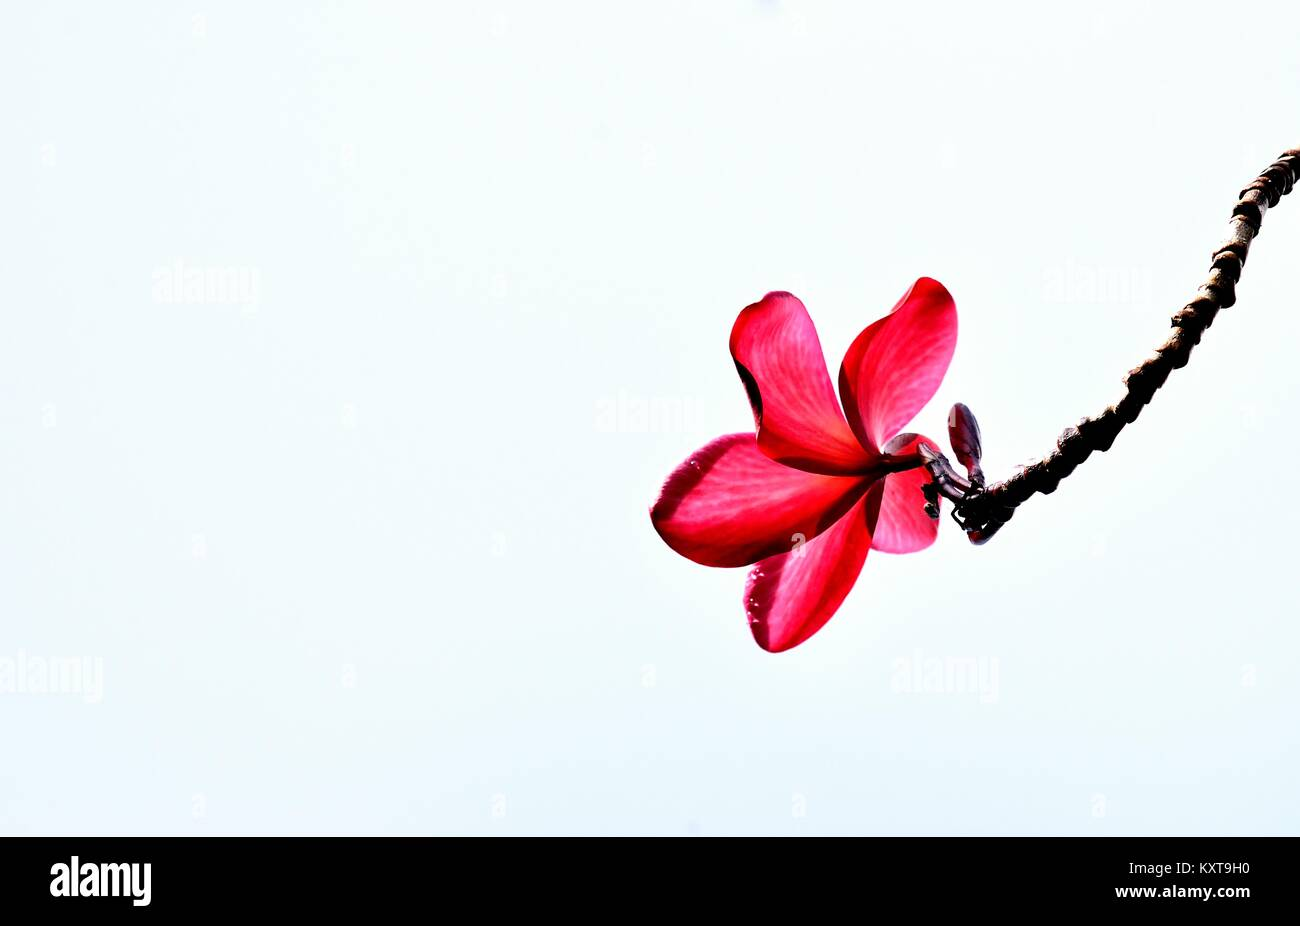 A single red frangipani or plumeria blossom  in sunlight isolated against a white wall - Stock Image